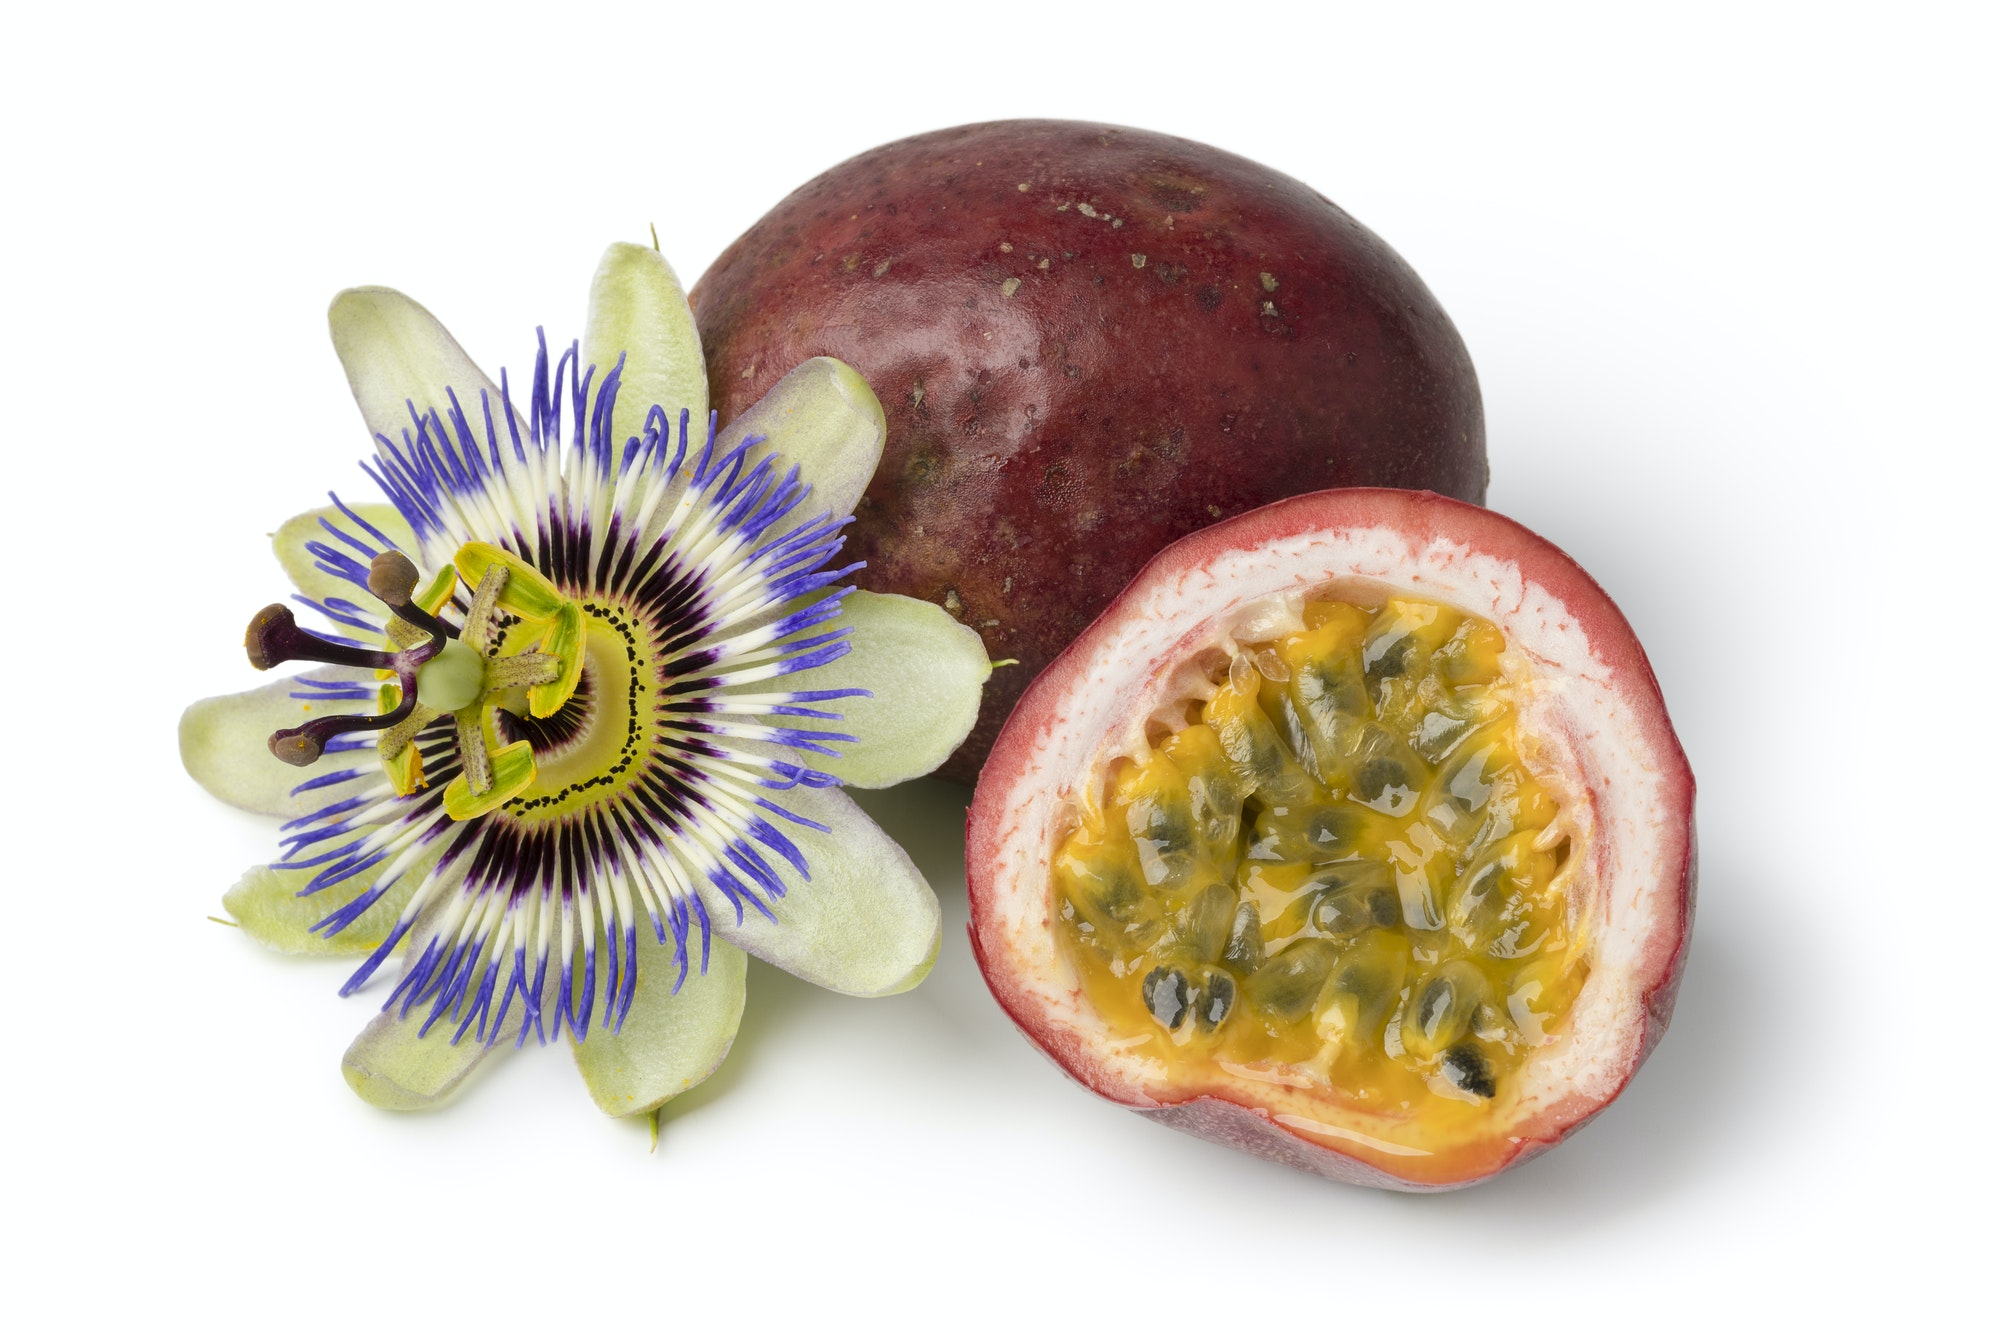 Passiflora edulis fruit and flower